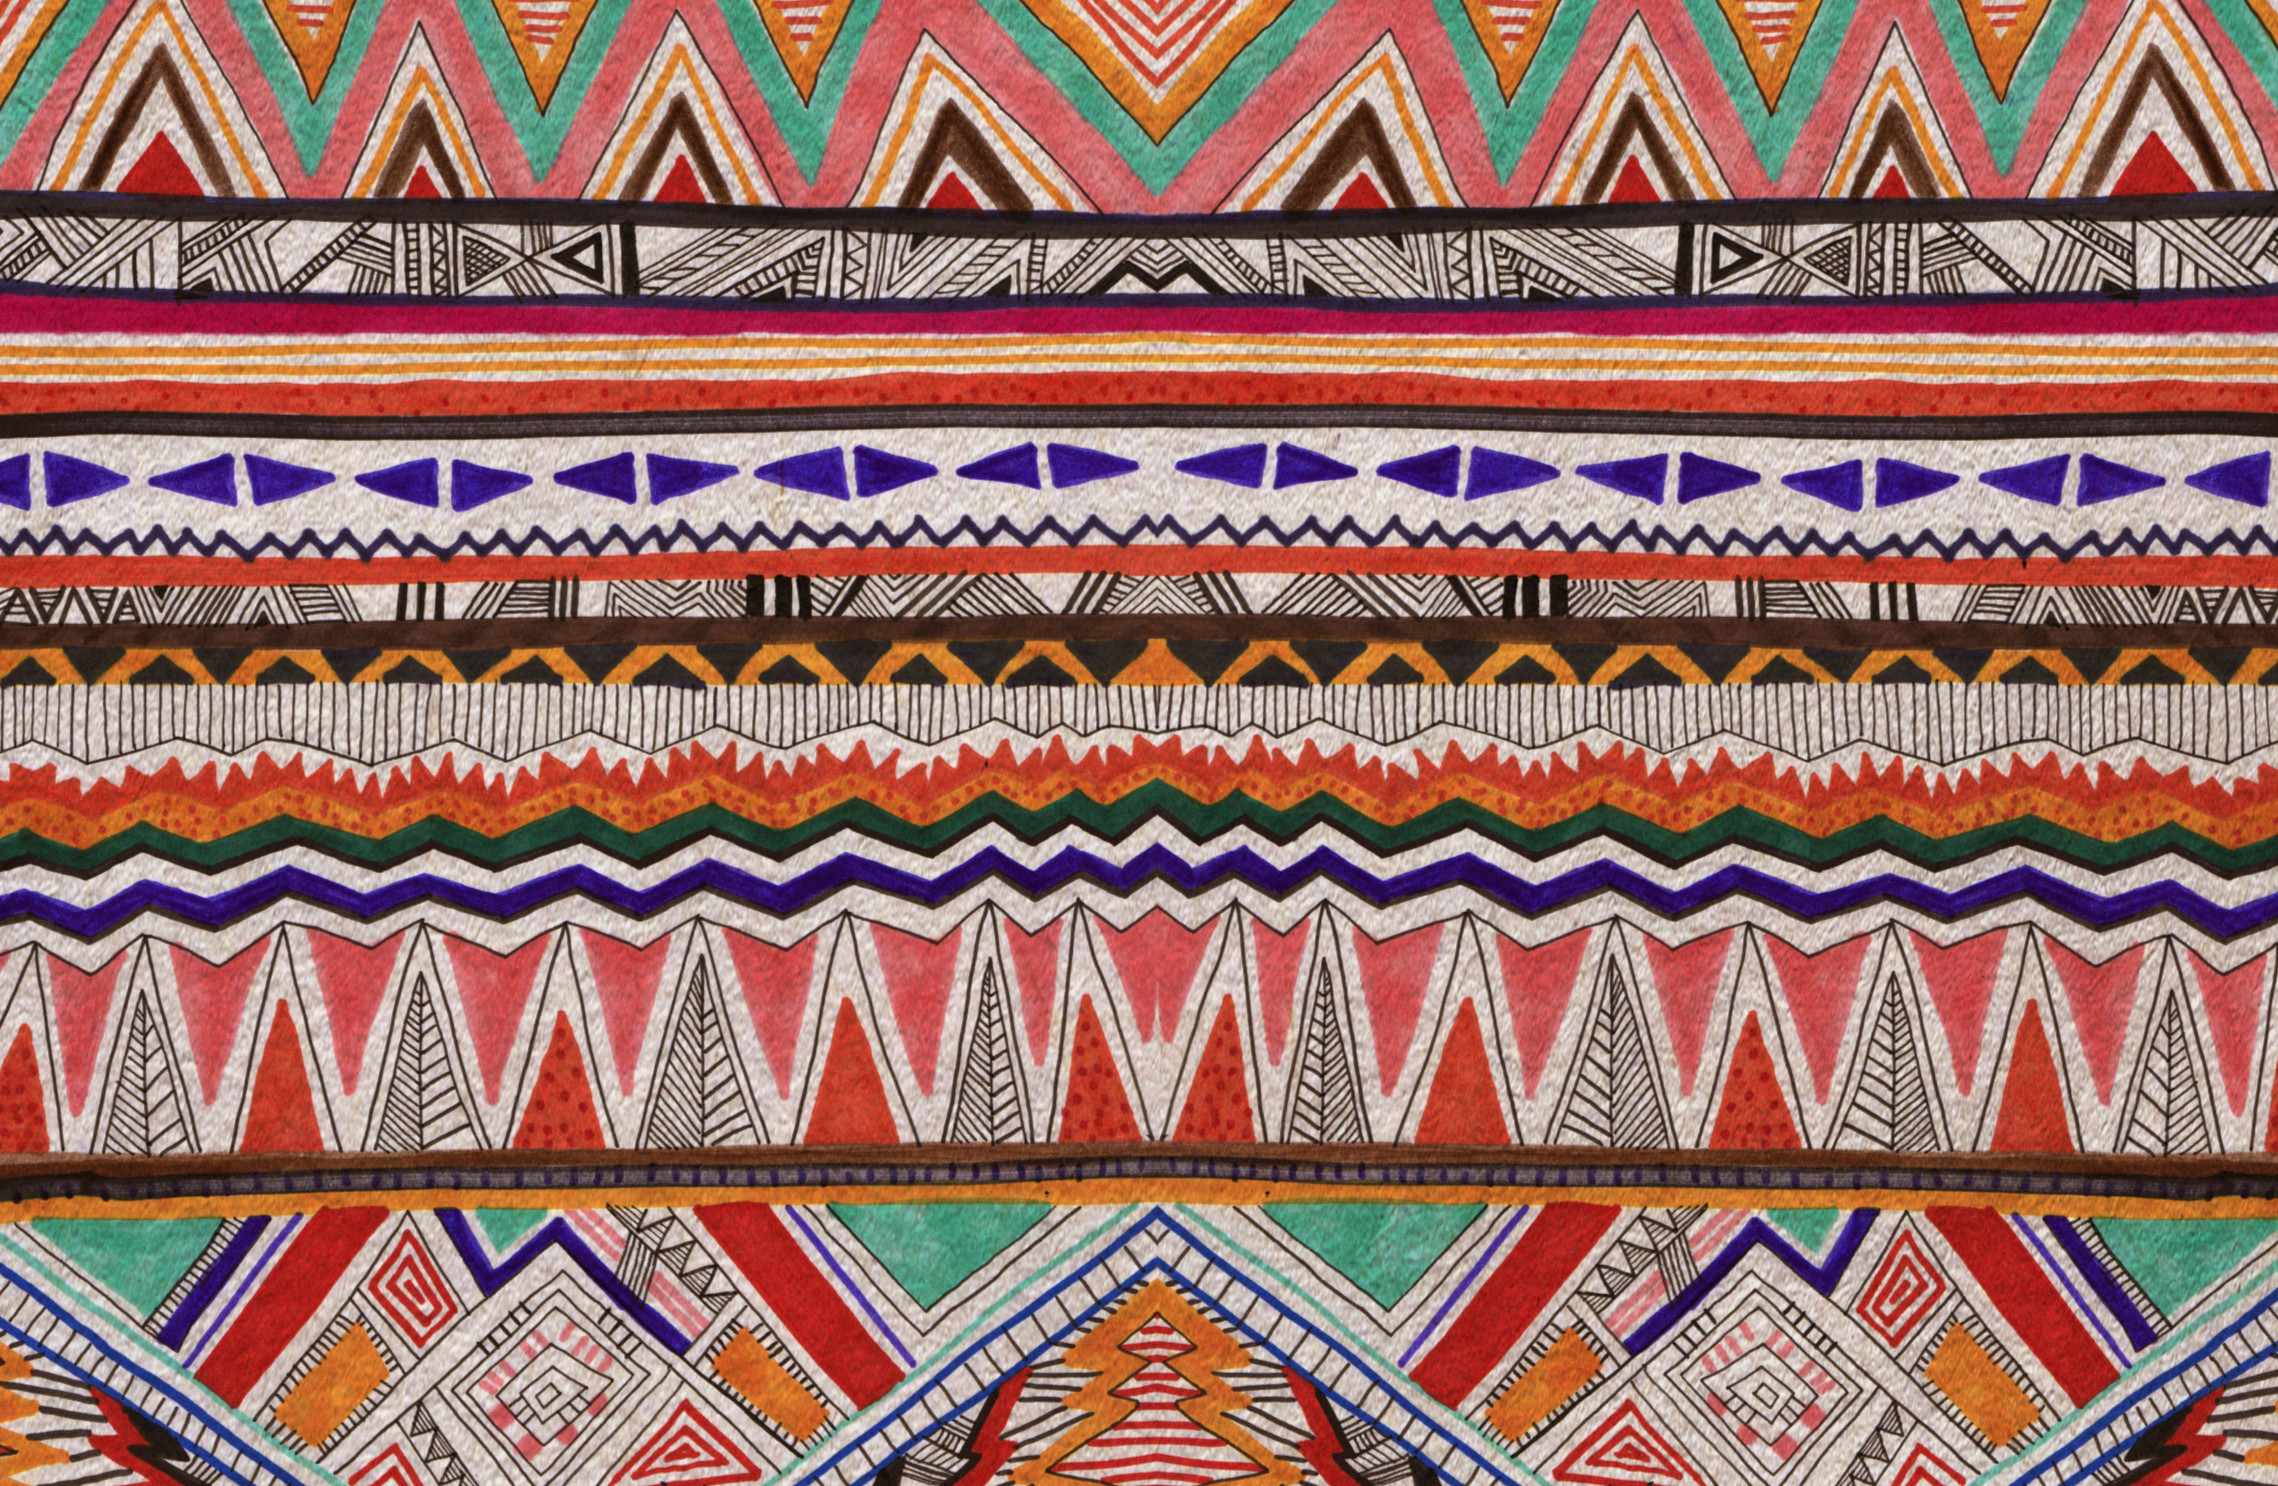 2278x1486 - Cool Tribal Backgrounds 23